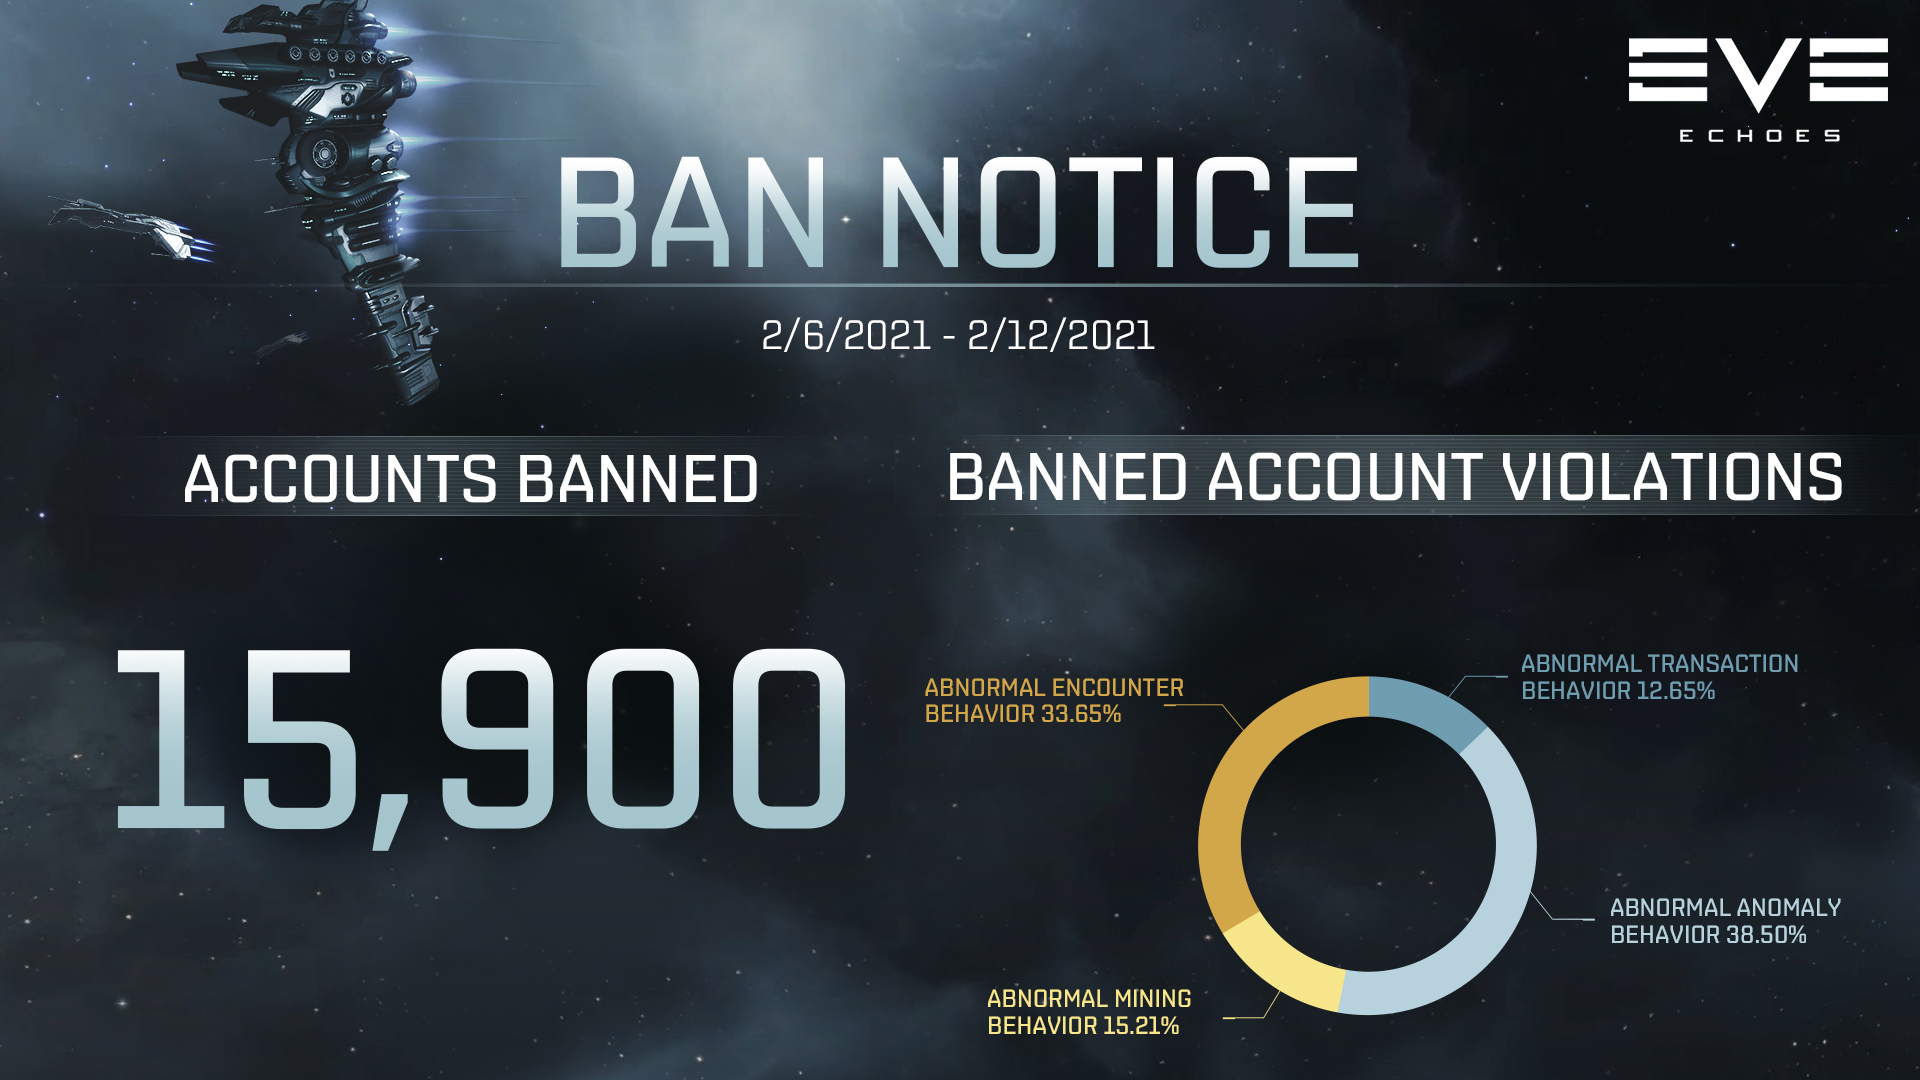 Ban Notice for 02/06-02/12